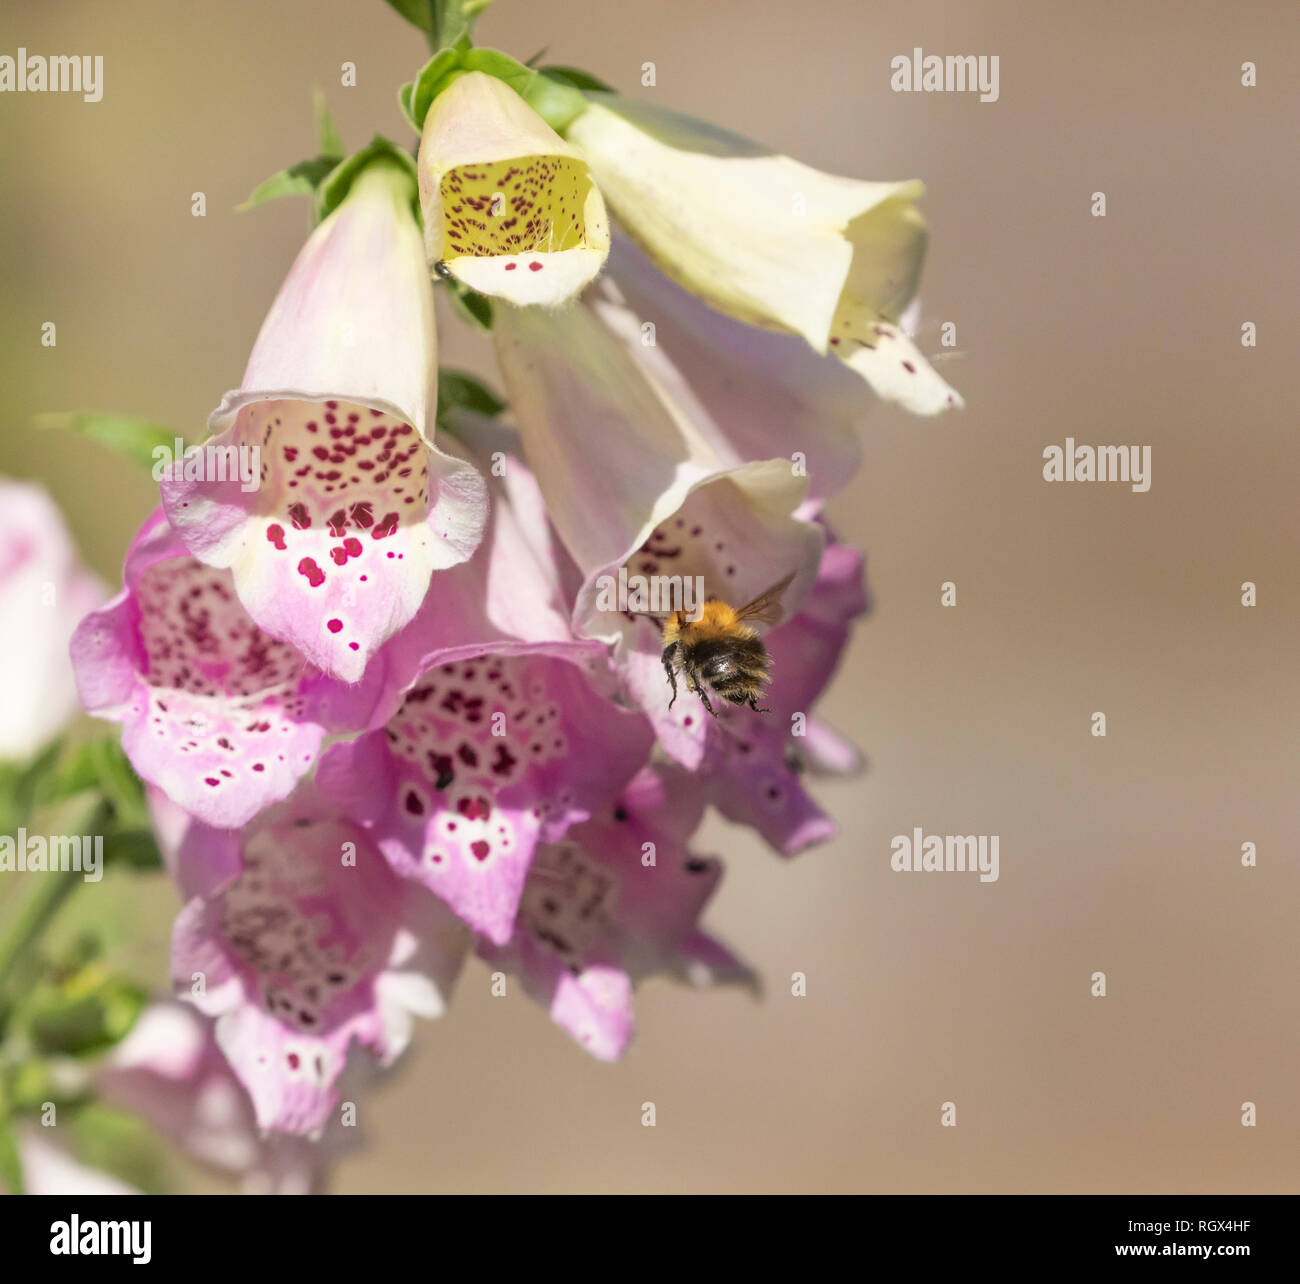 A bumble bee (bombus pascuorum) on a foxglove plant collecting nectar and pollen. Stock Photo